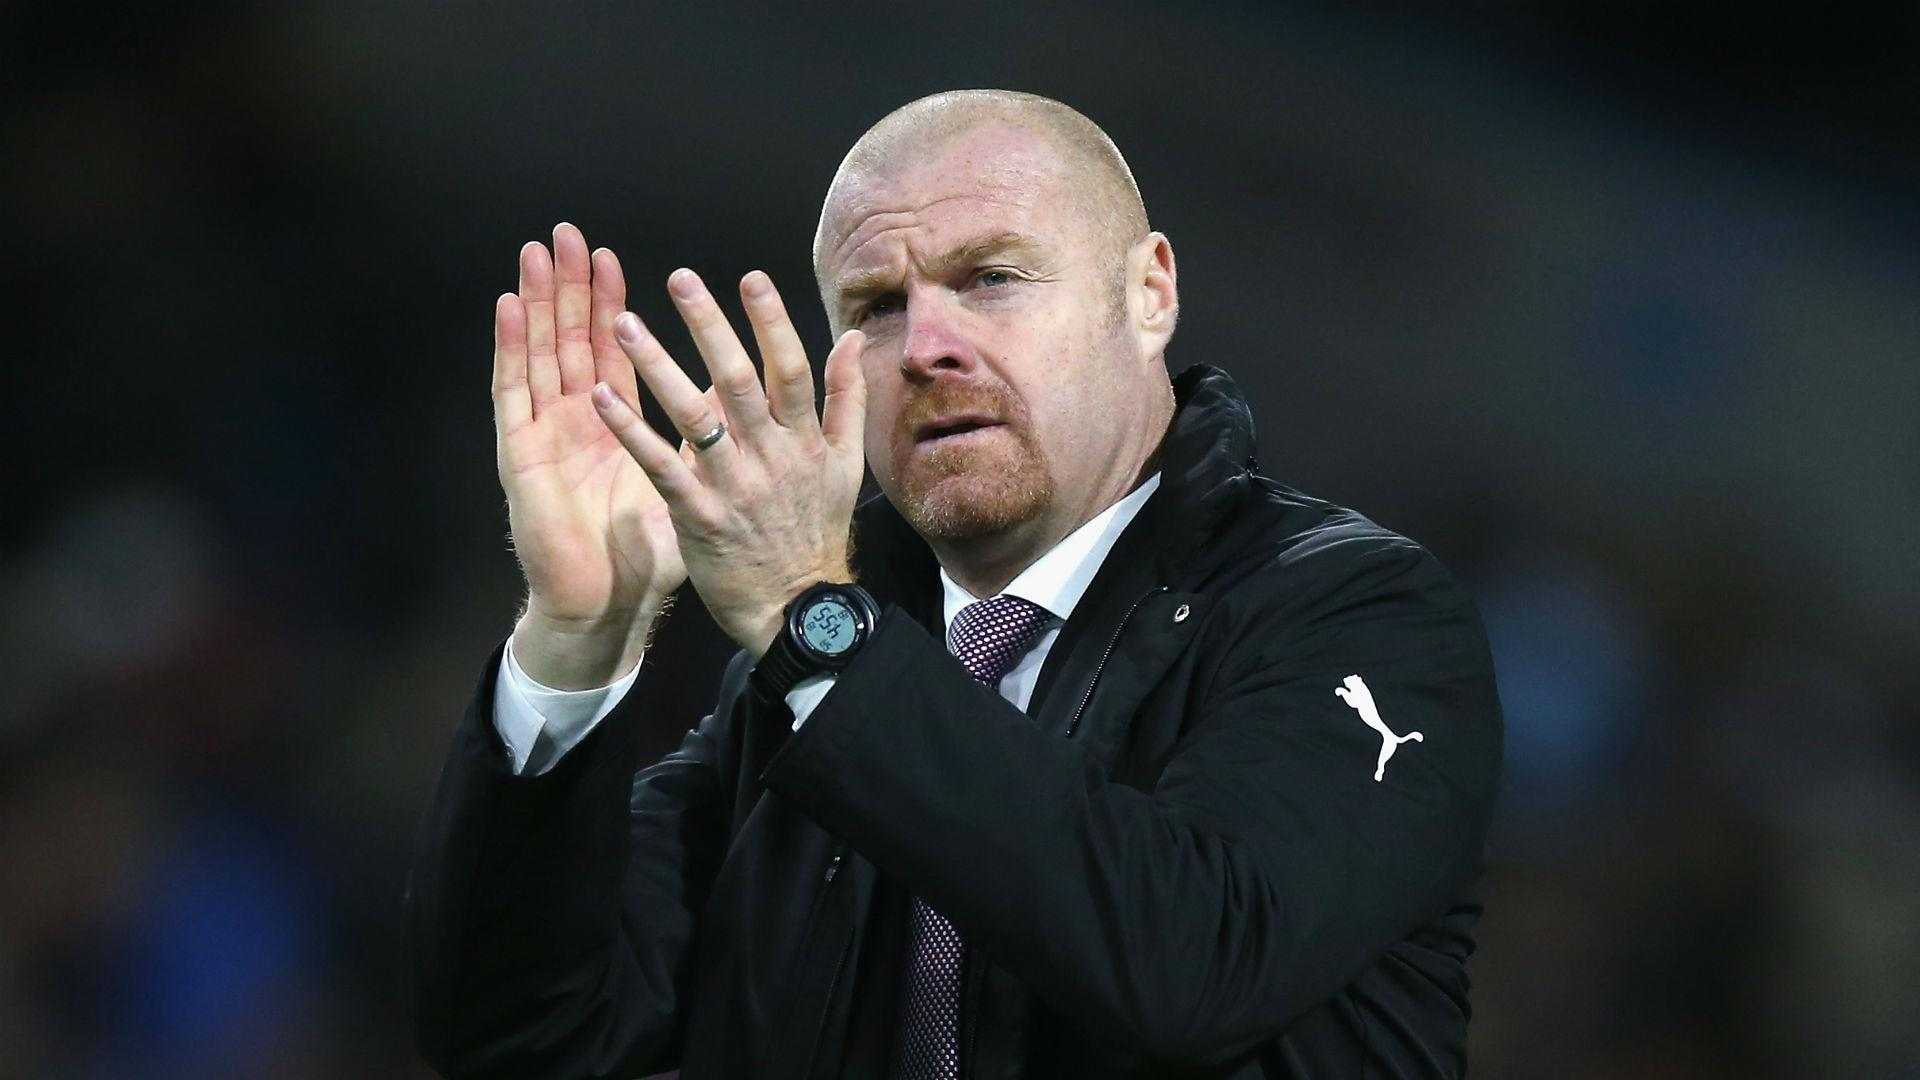 Does being gay mean you can't be a good footballer? No - Dyche